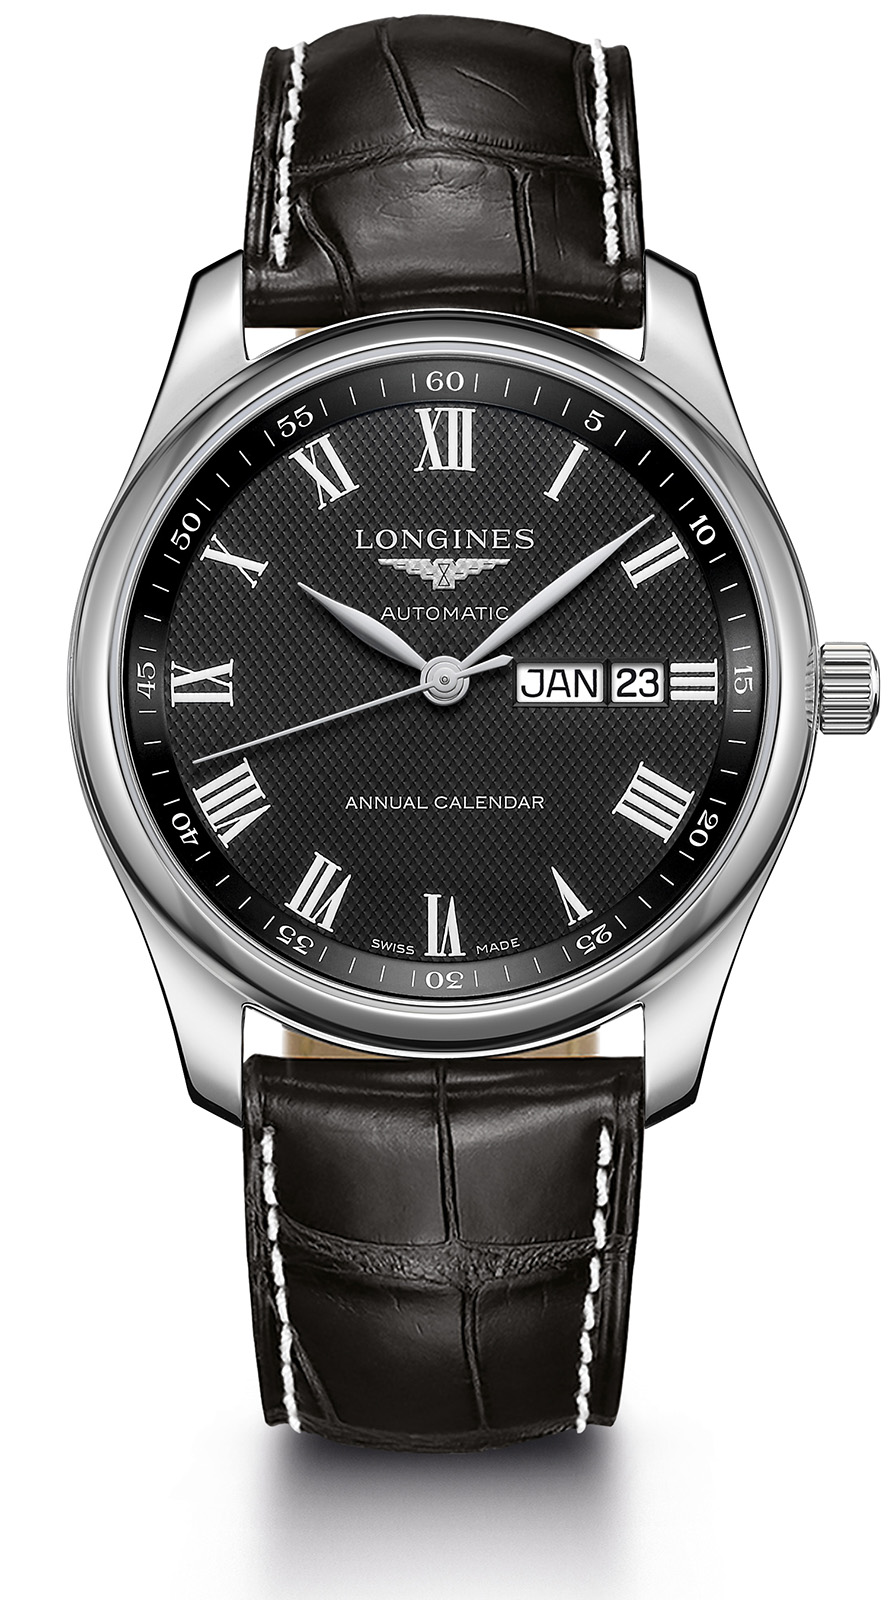 The Longines Master Collection Annual Calendar L2.910.4.51.7